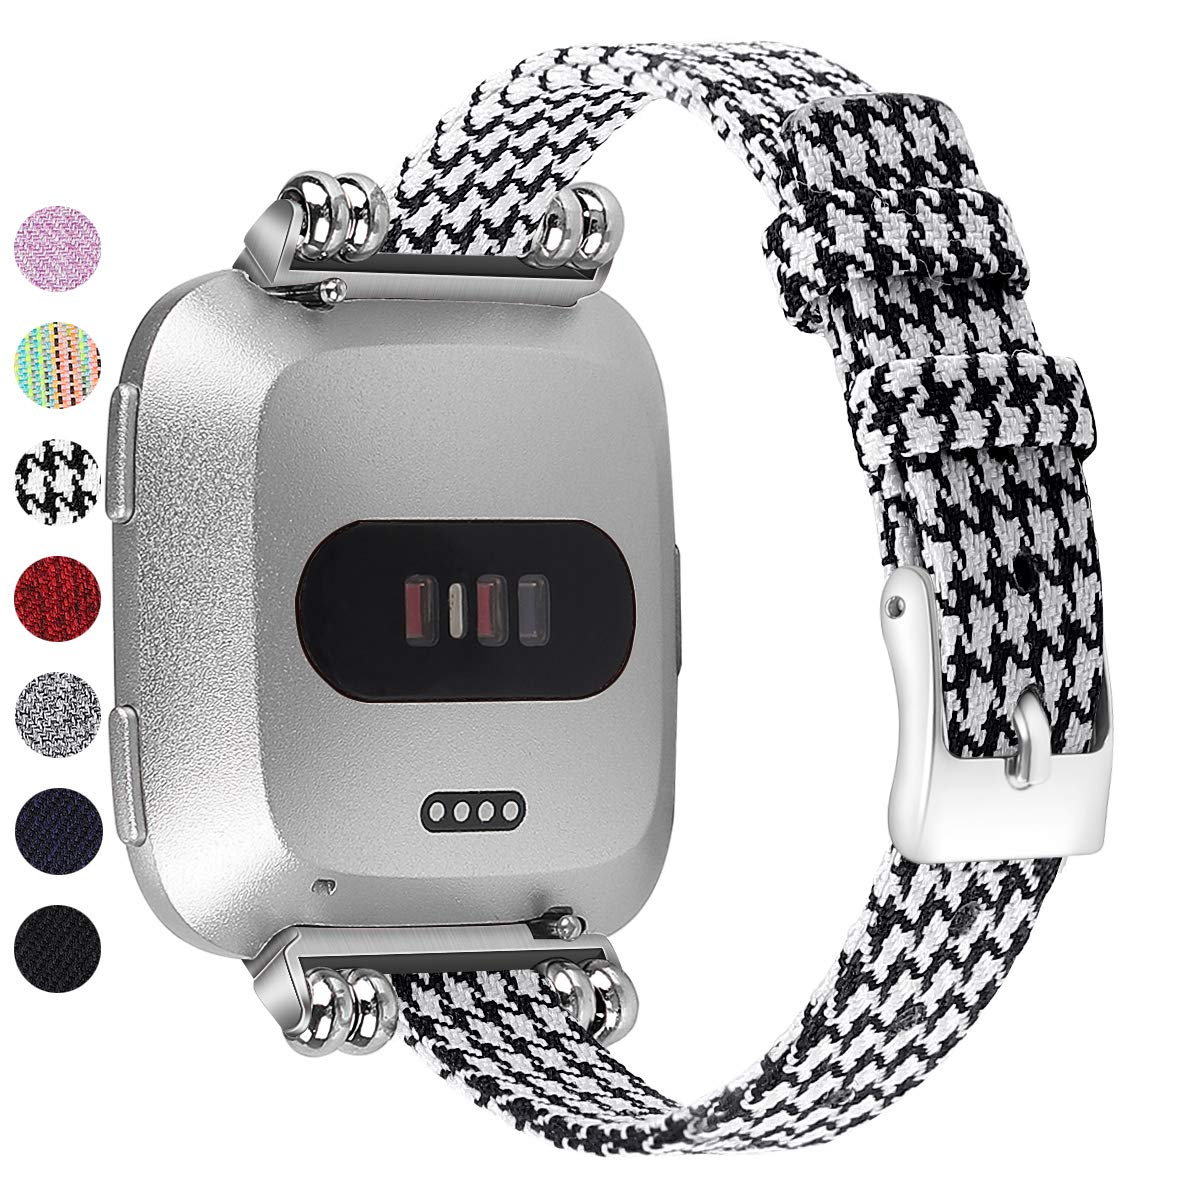 MEFEO Compatible with Fitbit Versa Bands, Woven Fabric Slim Band Narrow Stylish Wristband Replacement Strap for Fitbit Versa/Versa 2/Versa Lite Edition Women